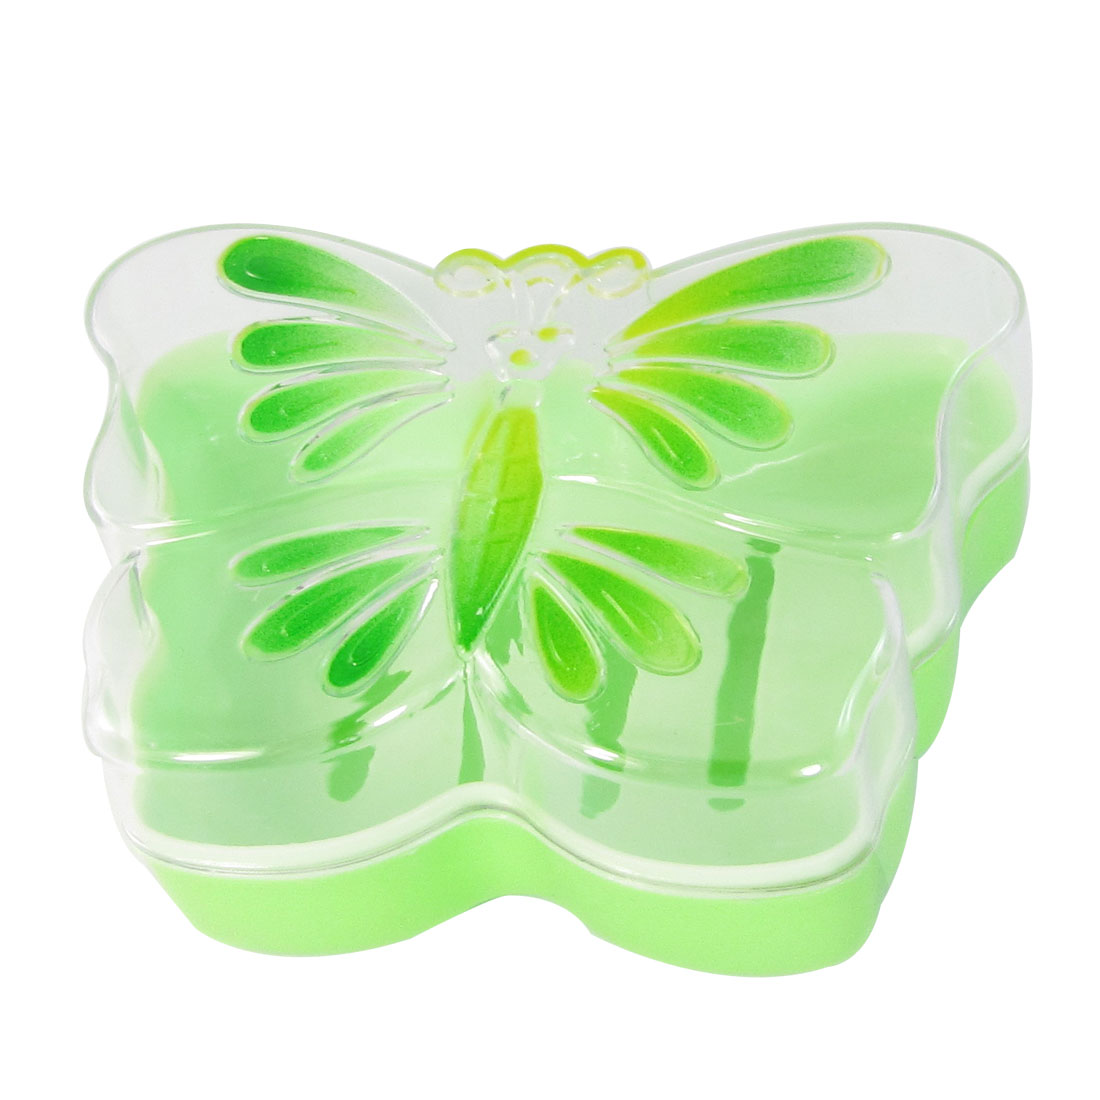 Bathroom Pale Green Plastic Butterfly Design Dual Decks Soap Dish Tray Holder